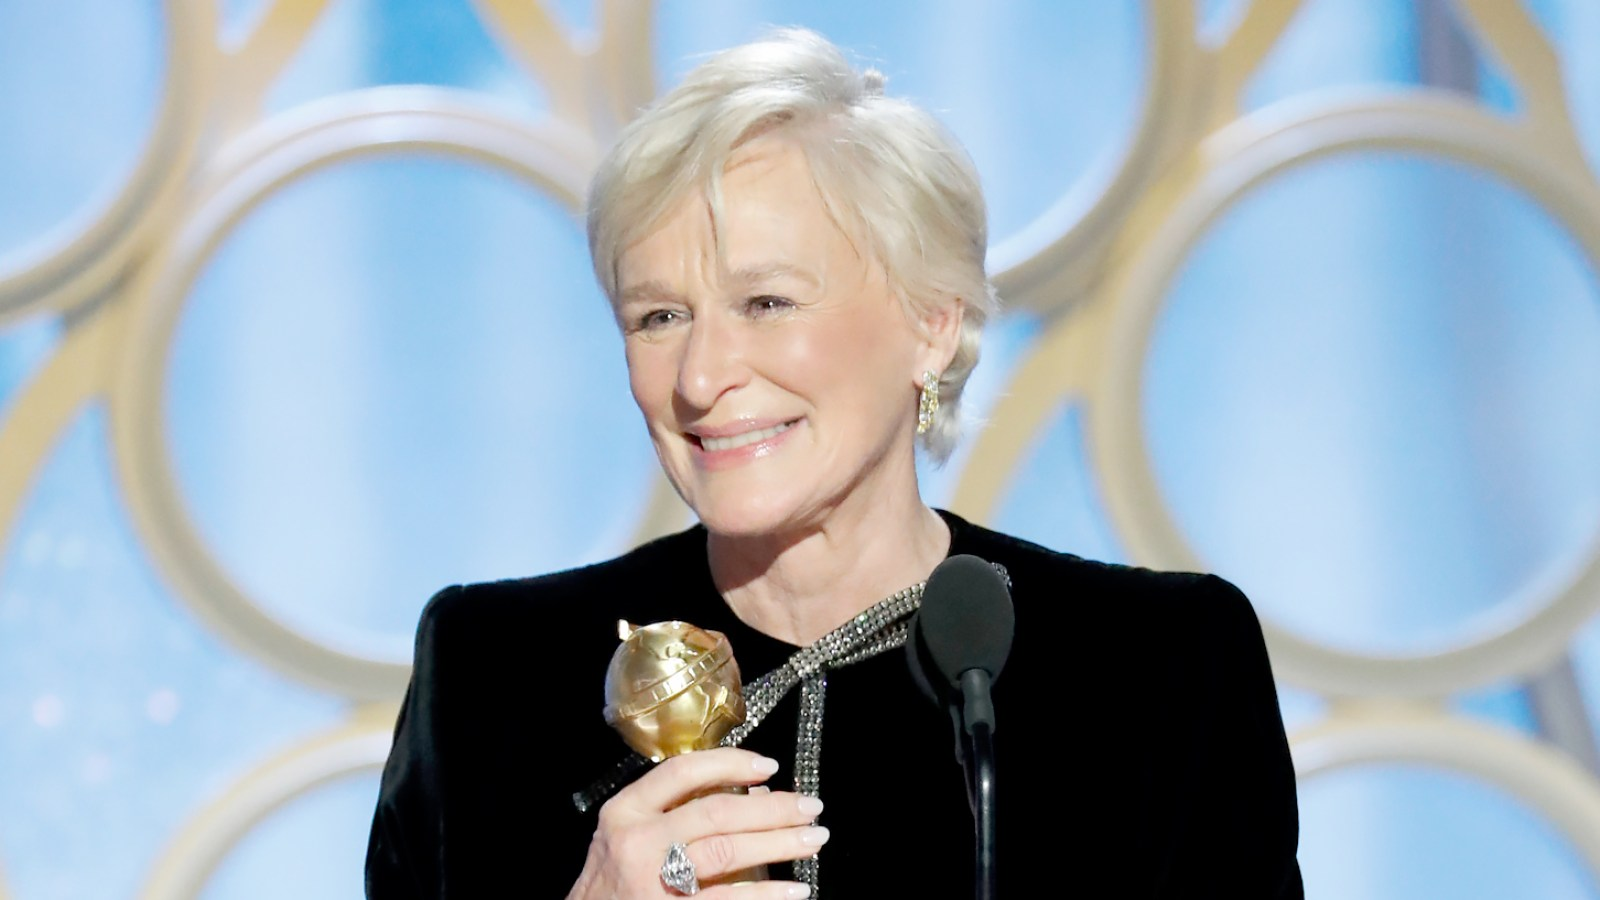 Golden Globes 2019 Glenn Close Cries After The Wife Win